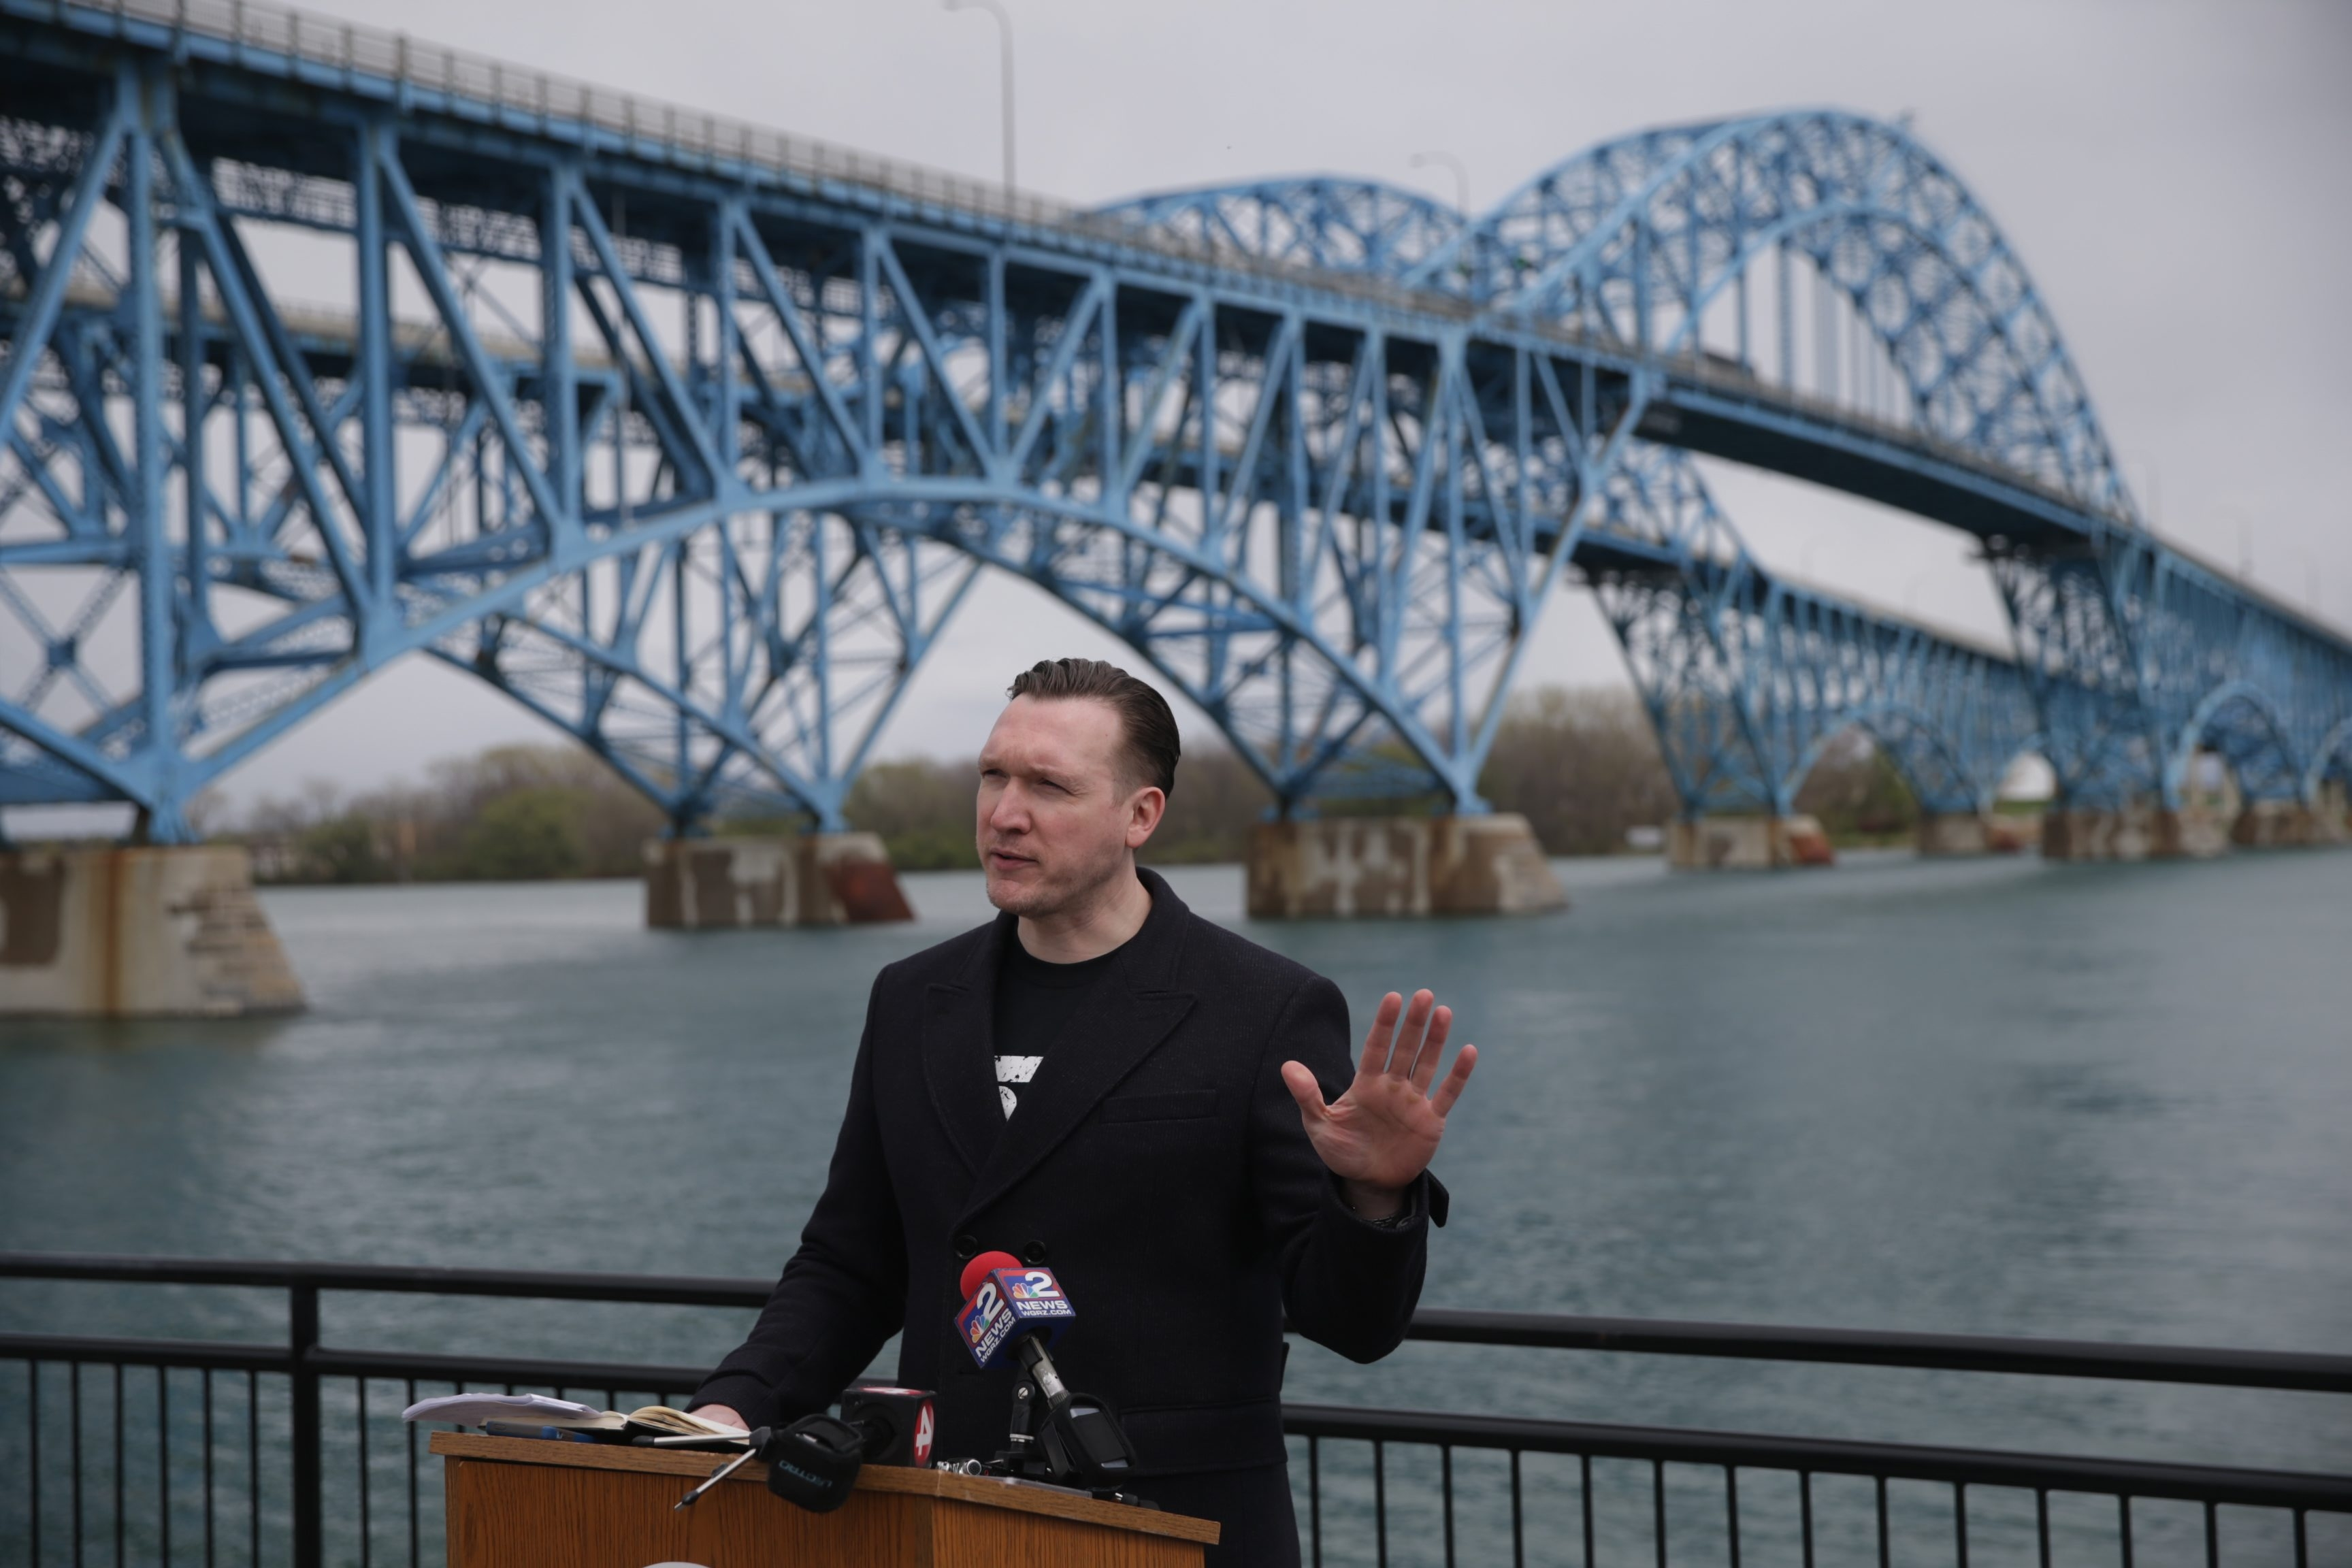 Nathan McMurray speaks at a rally to remove the Grand Island toll barriers at Fisherman's Park. (News file photo)